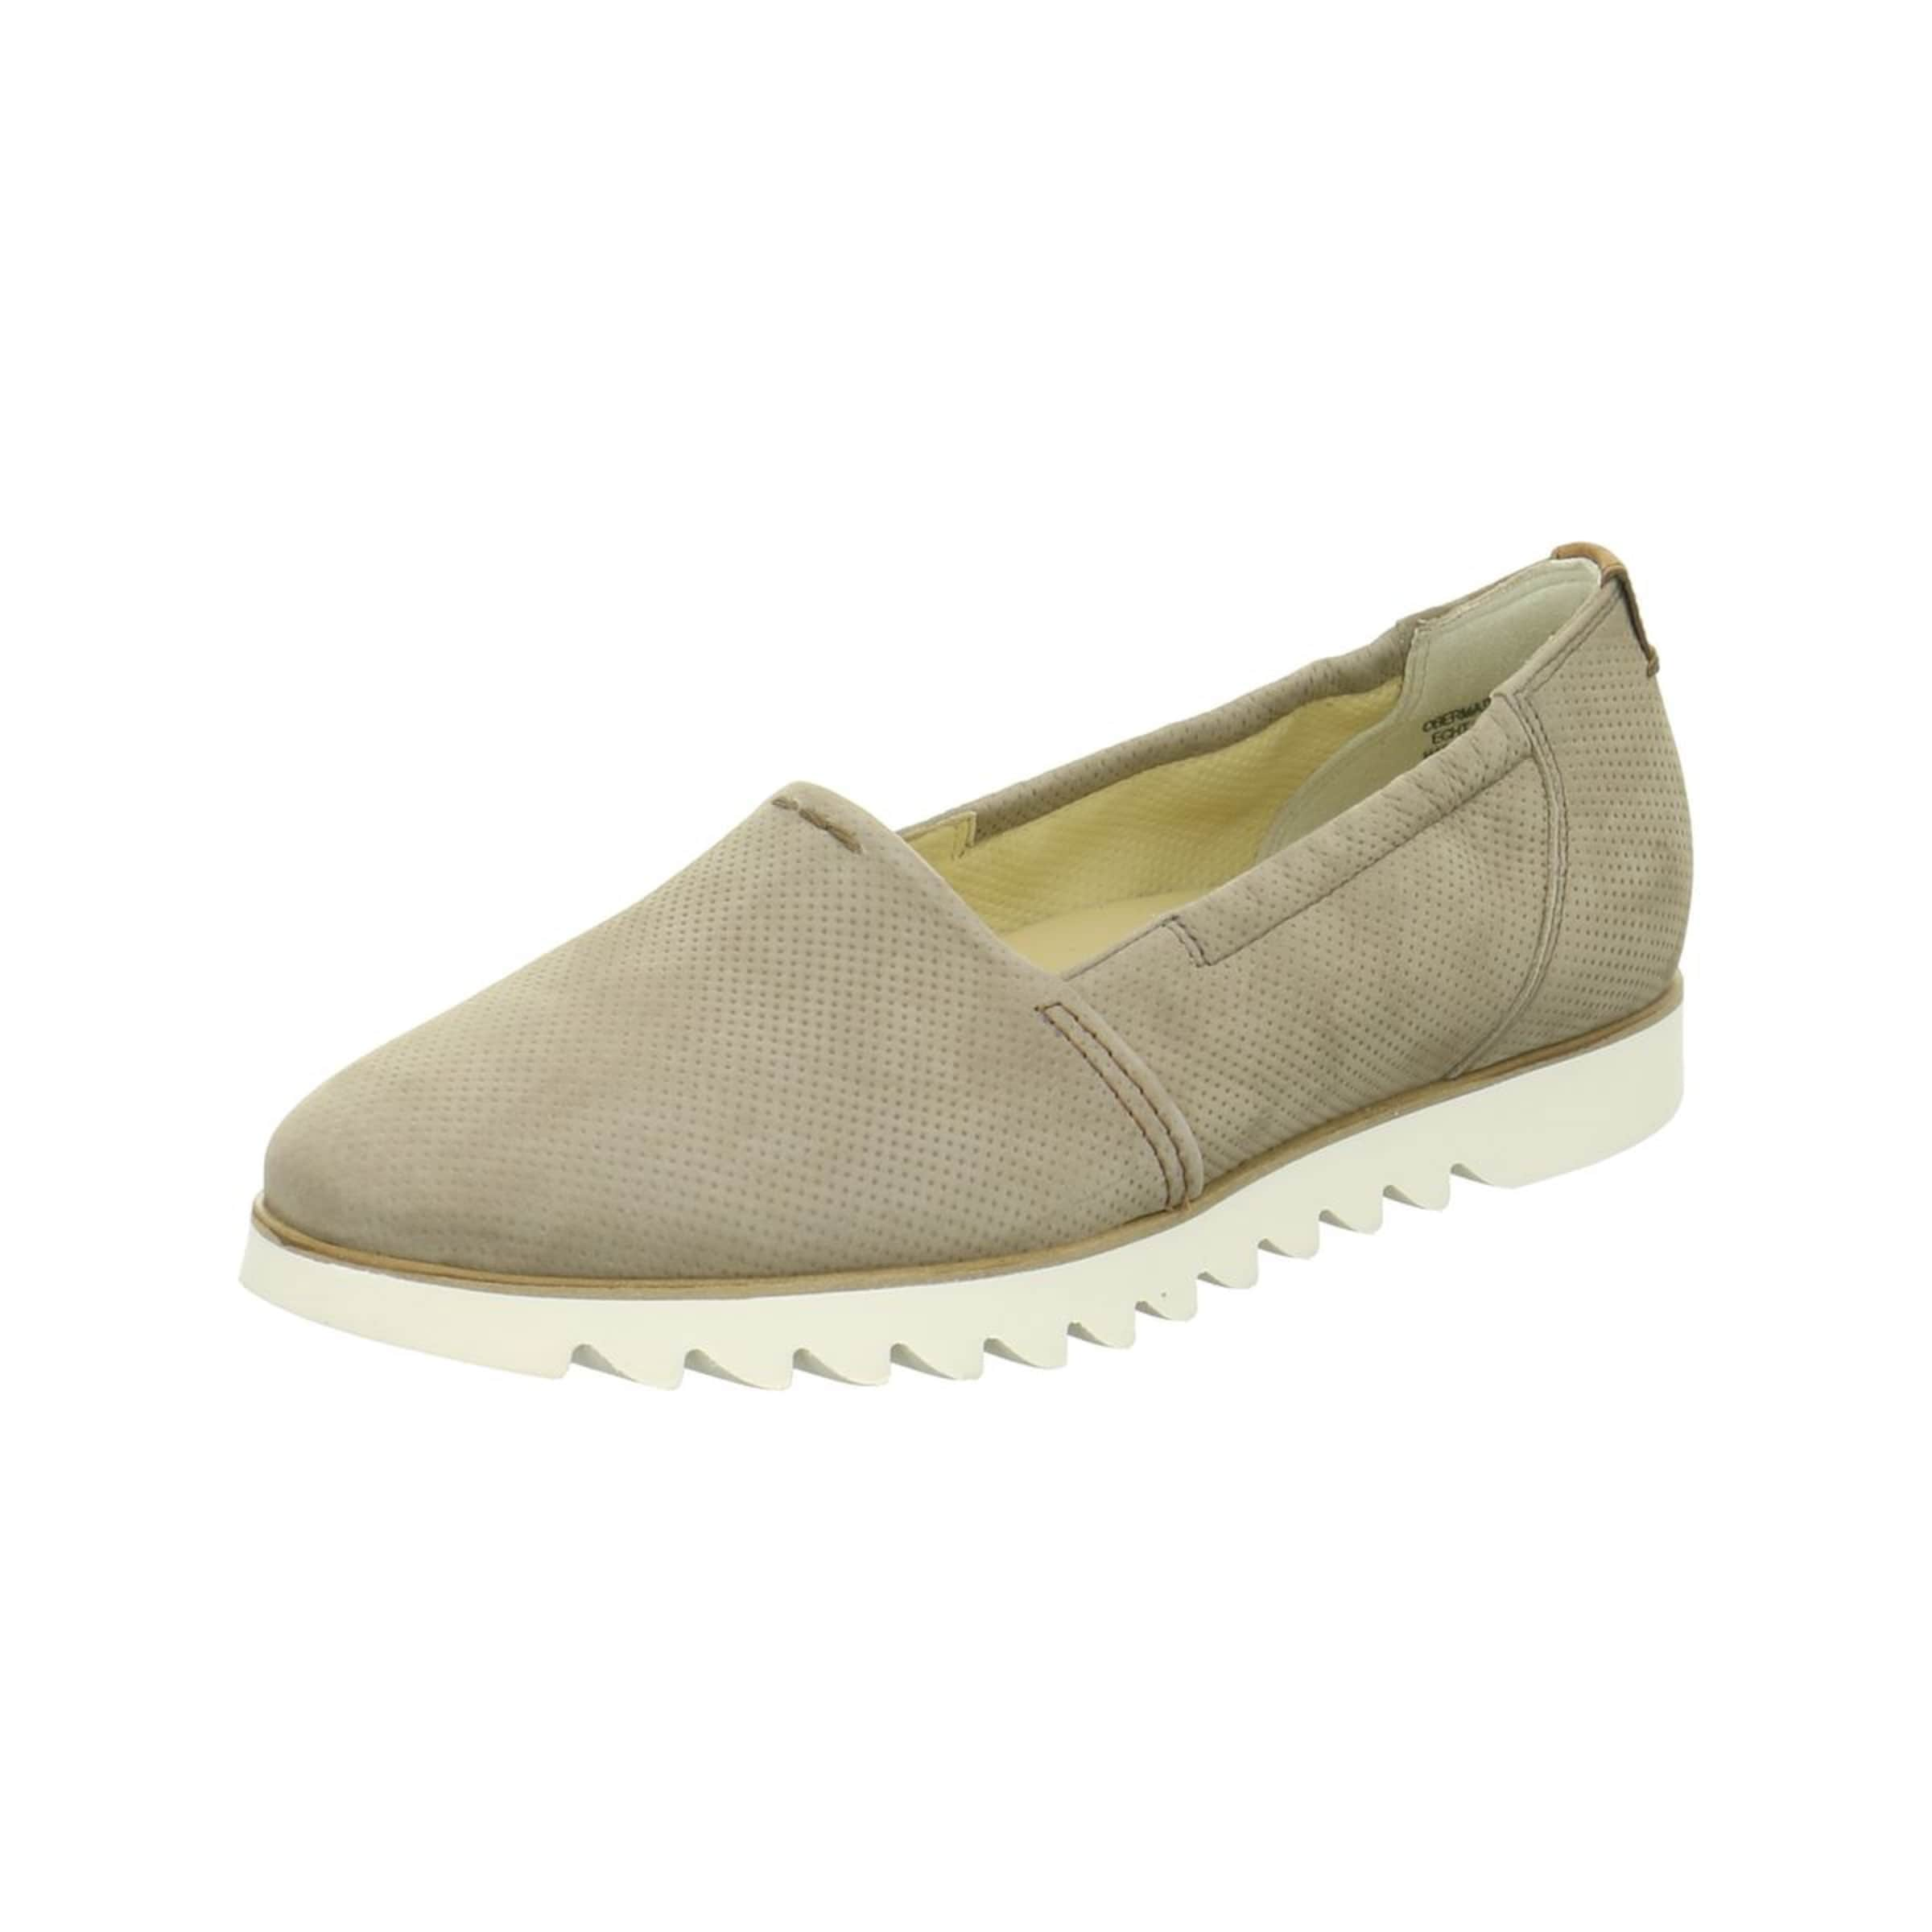 Green Paul Green Paul Sand Slipper In Paul Slipper Green Slipper In In Sand MVqUSzp